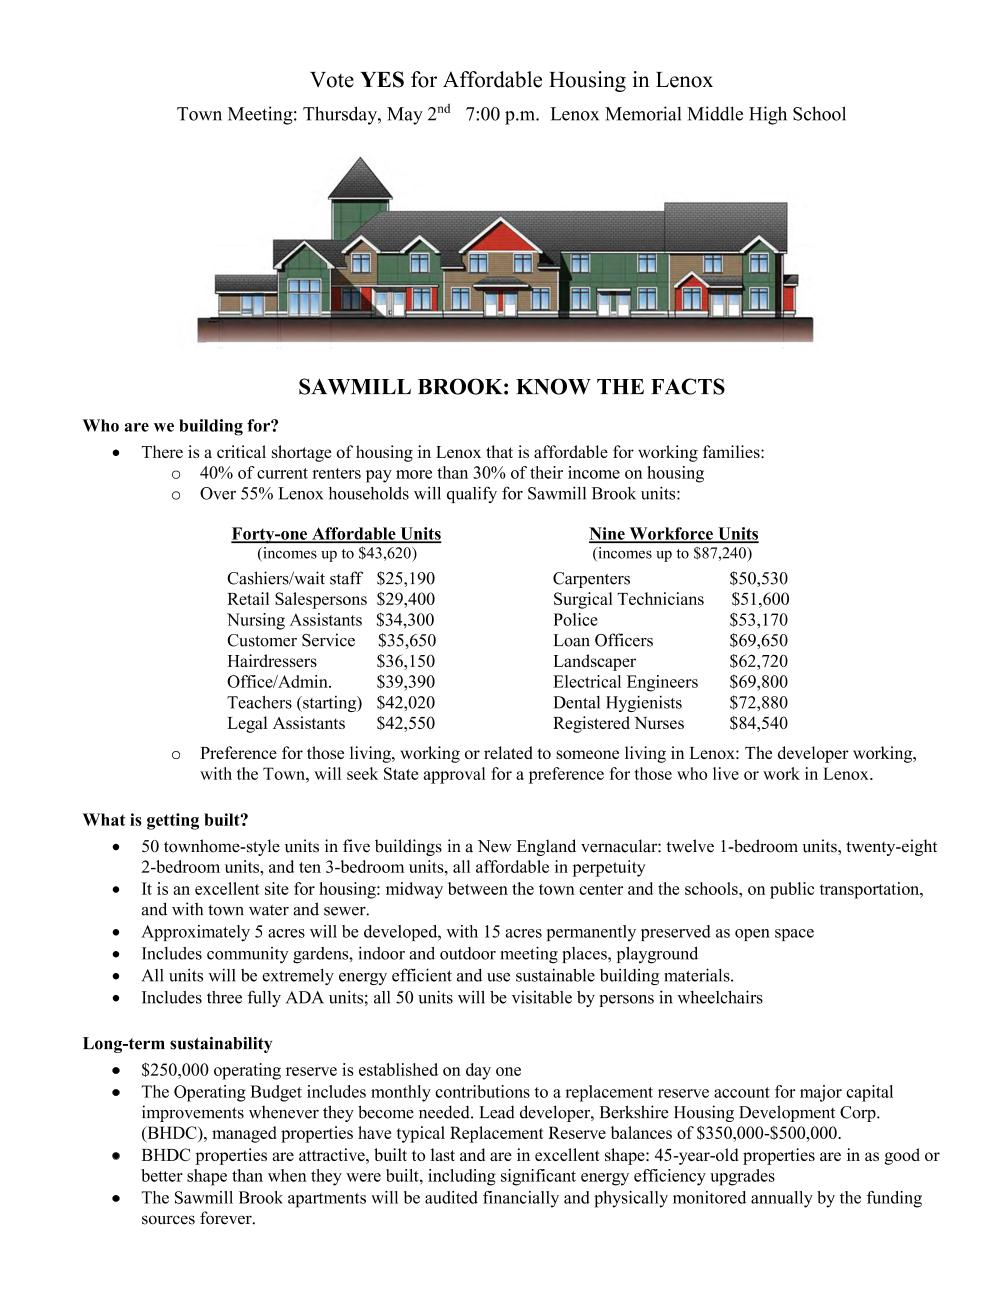 Sawmill Facts page 1